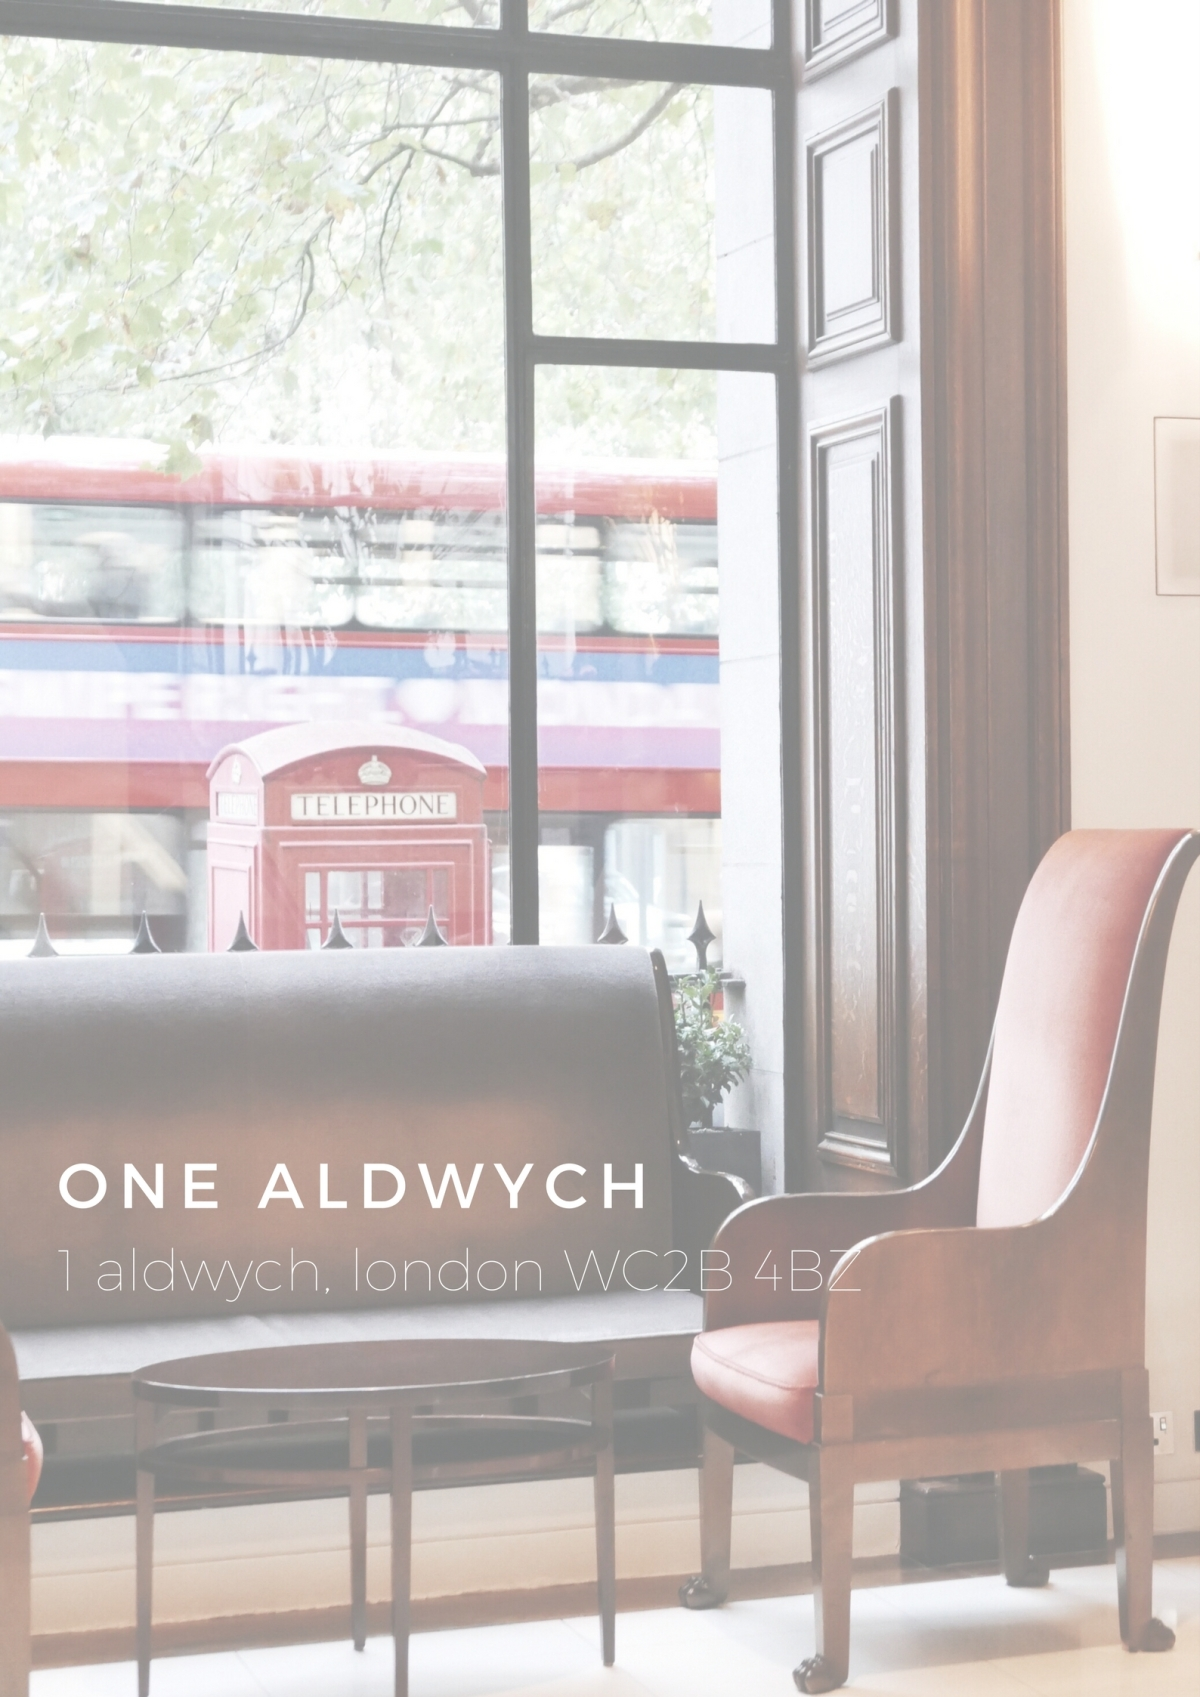 Stay in London: One Aldwych